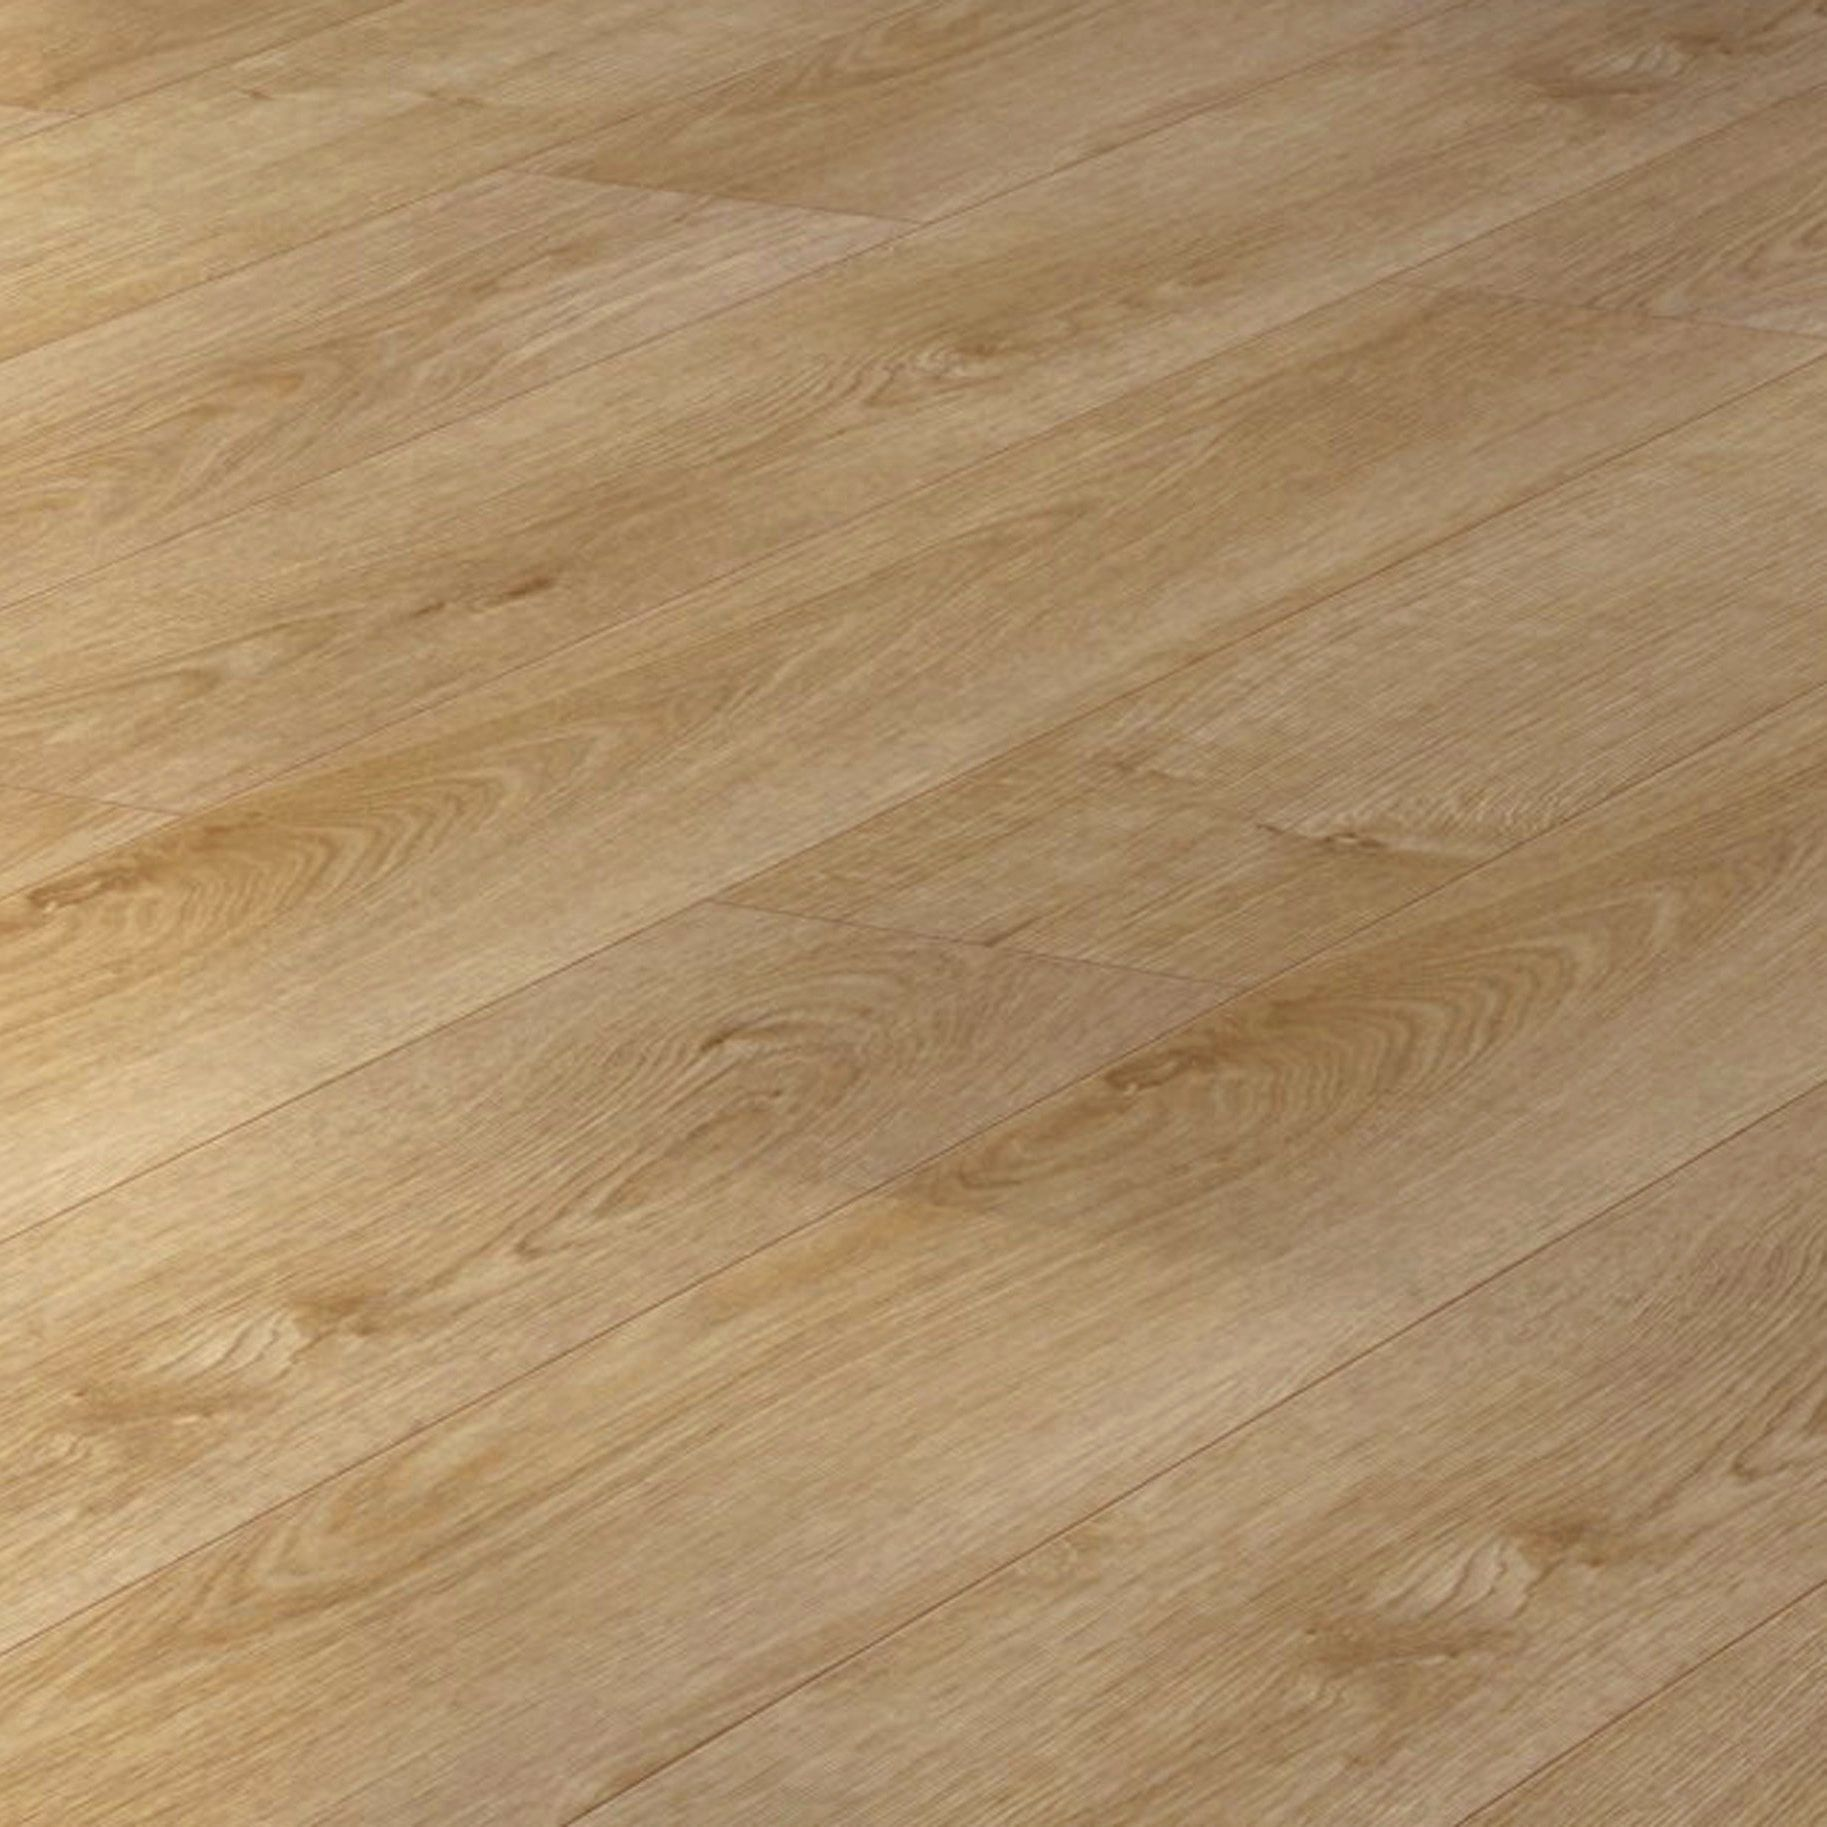 Overture Natural Milano Oak Effect Laminate Flooring 1.25 m Pack |  Departments | DIY at B&Q